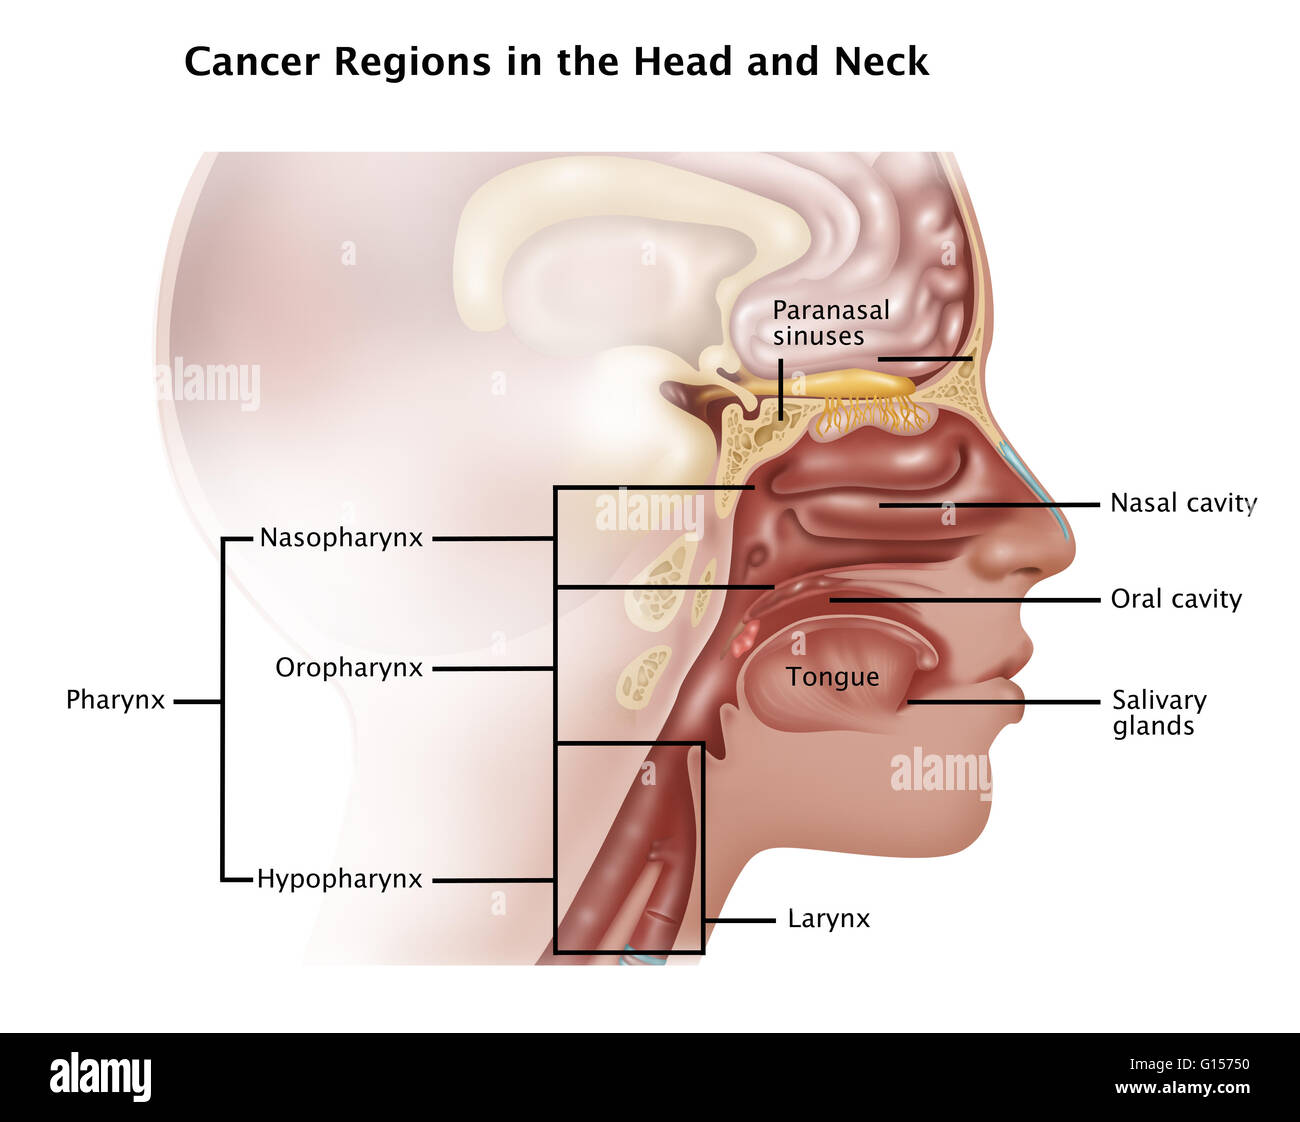 hight resolution of illustration showing the cancer regions in the head and neck which include the paranasal sinuses nasal cavity oral cavity salivary glands tongue